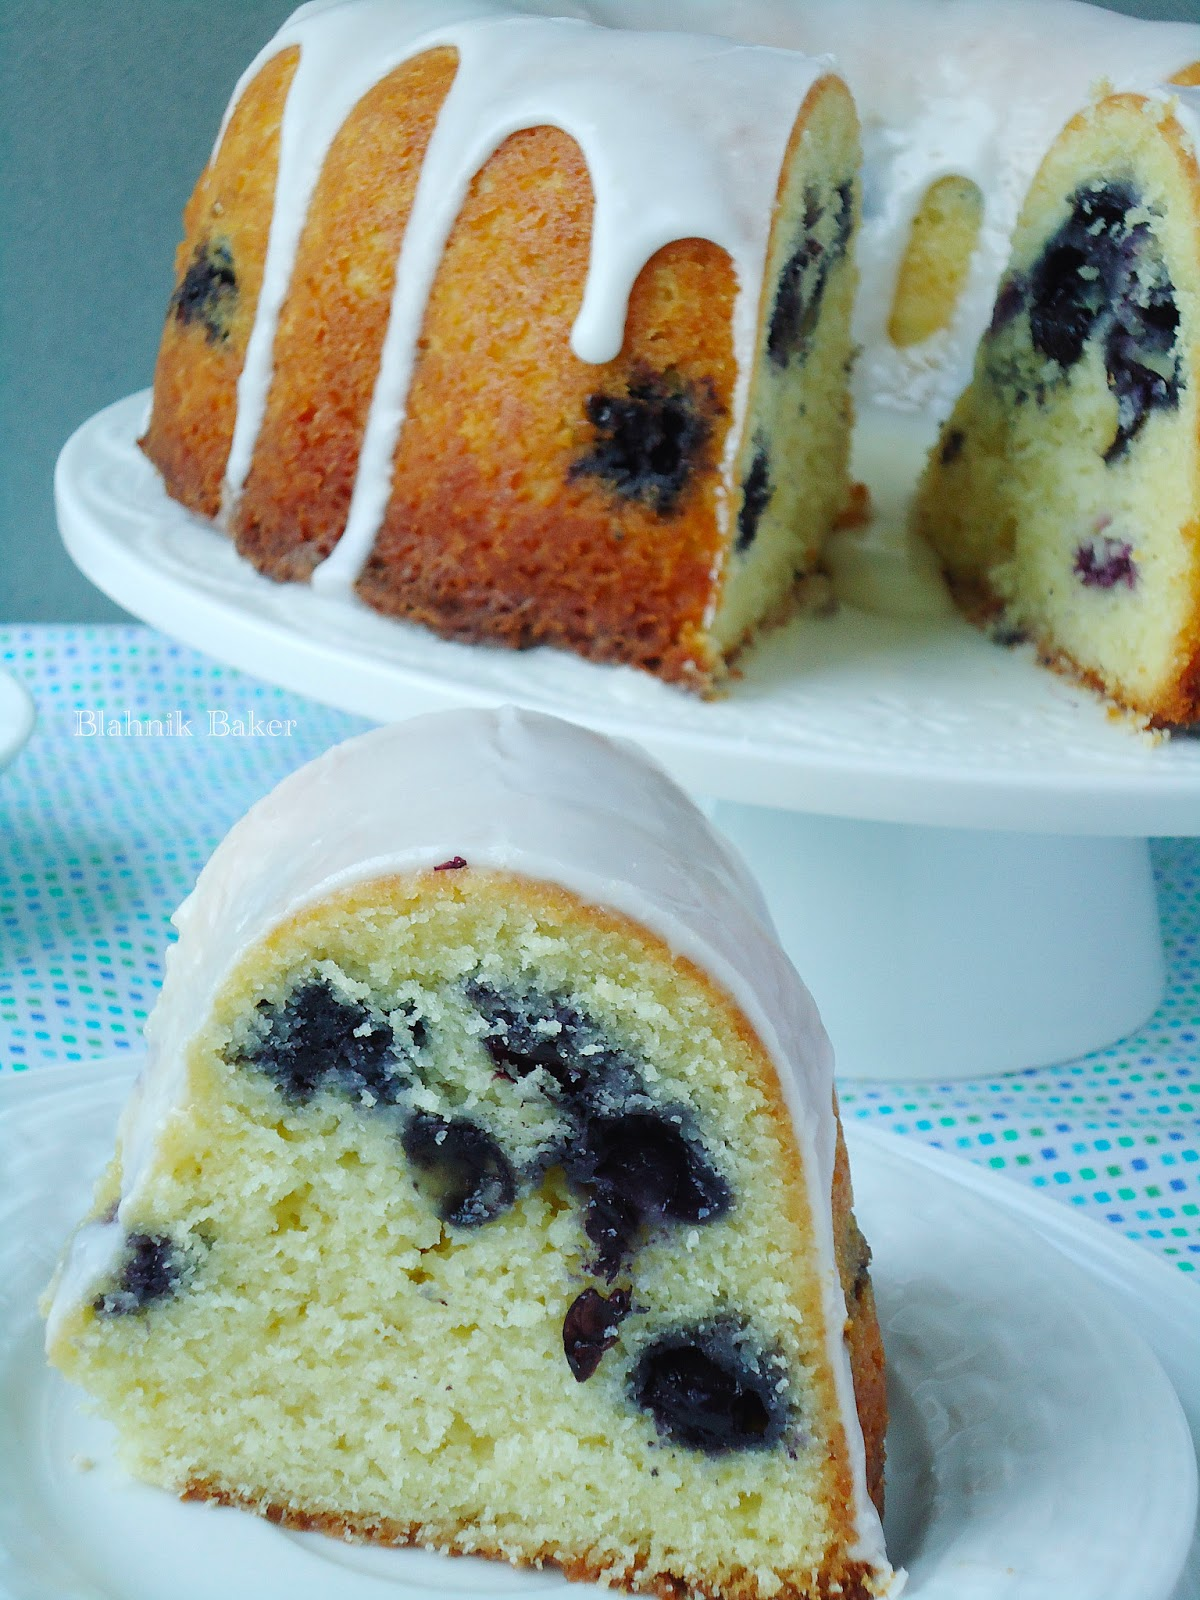 Blueberry Buttermilk Bundt Cake with Lemon Glaze| www.blahnikbaker.com